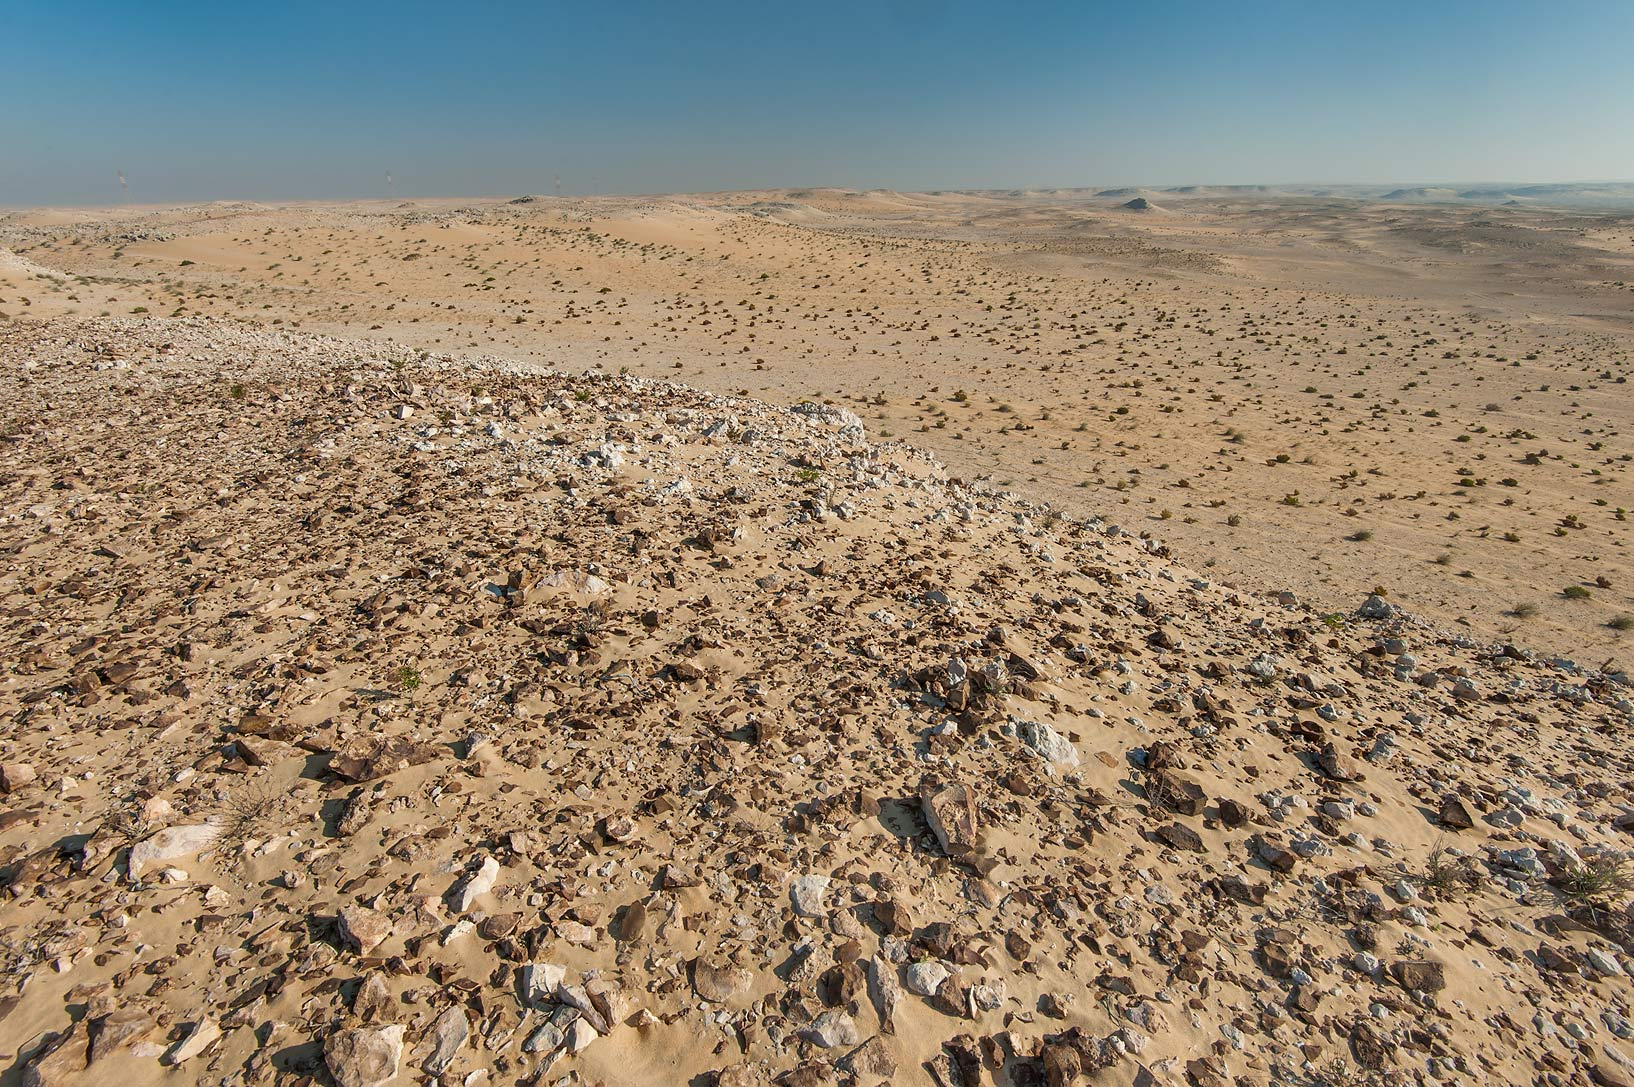 Black flint stones covering surface of a desert...road to Sawda Natheel. Southern Qatar